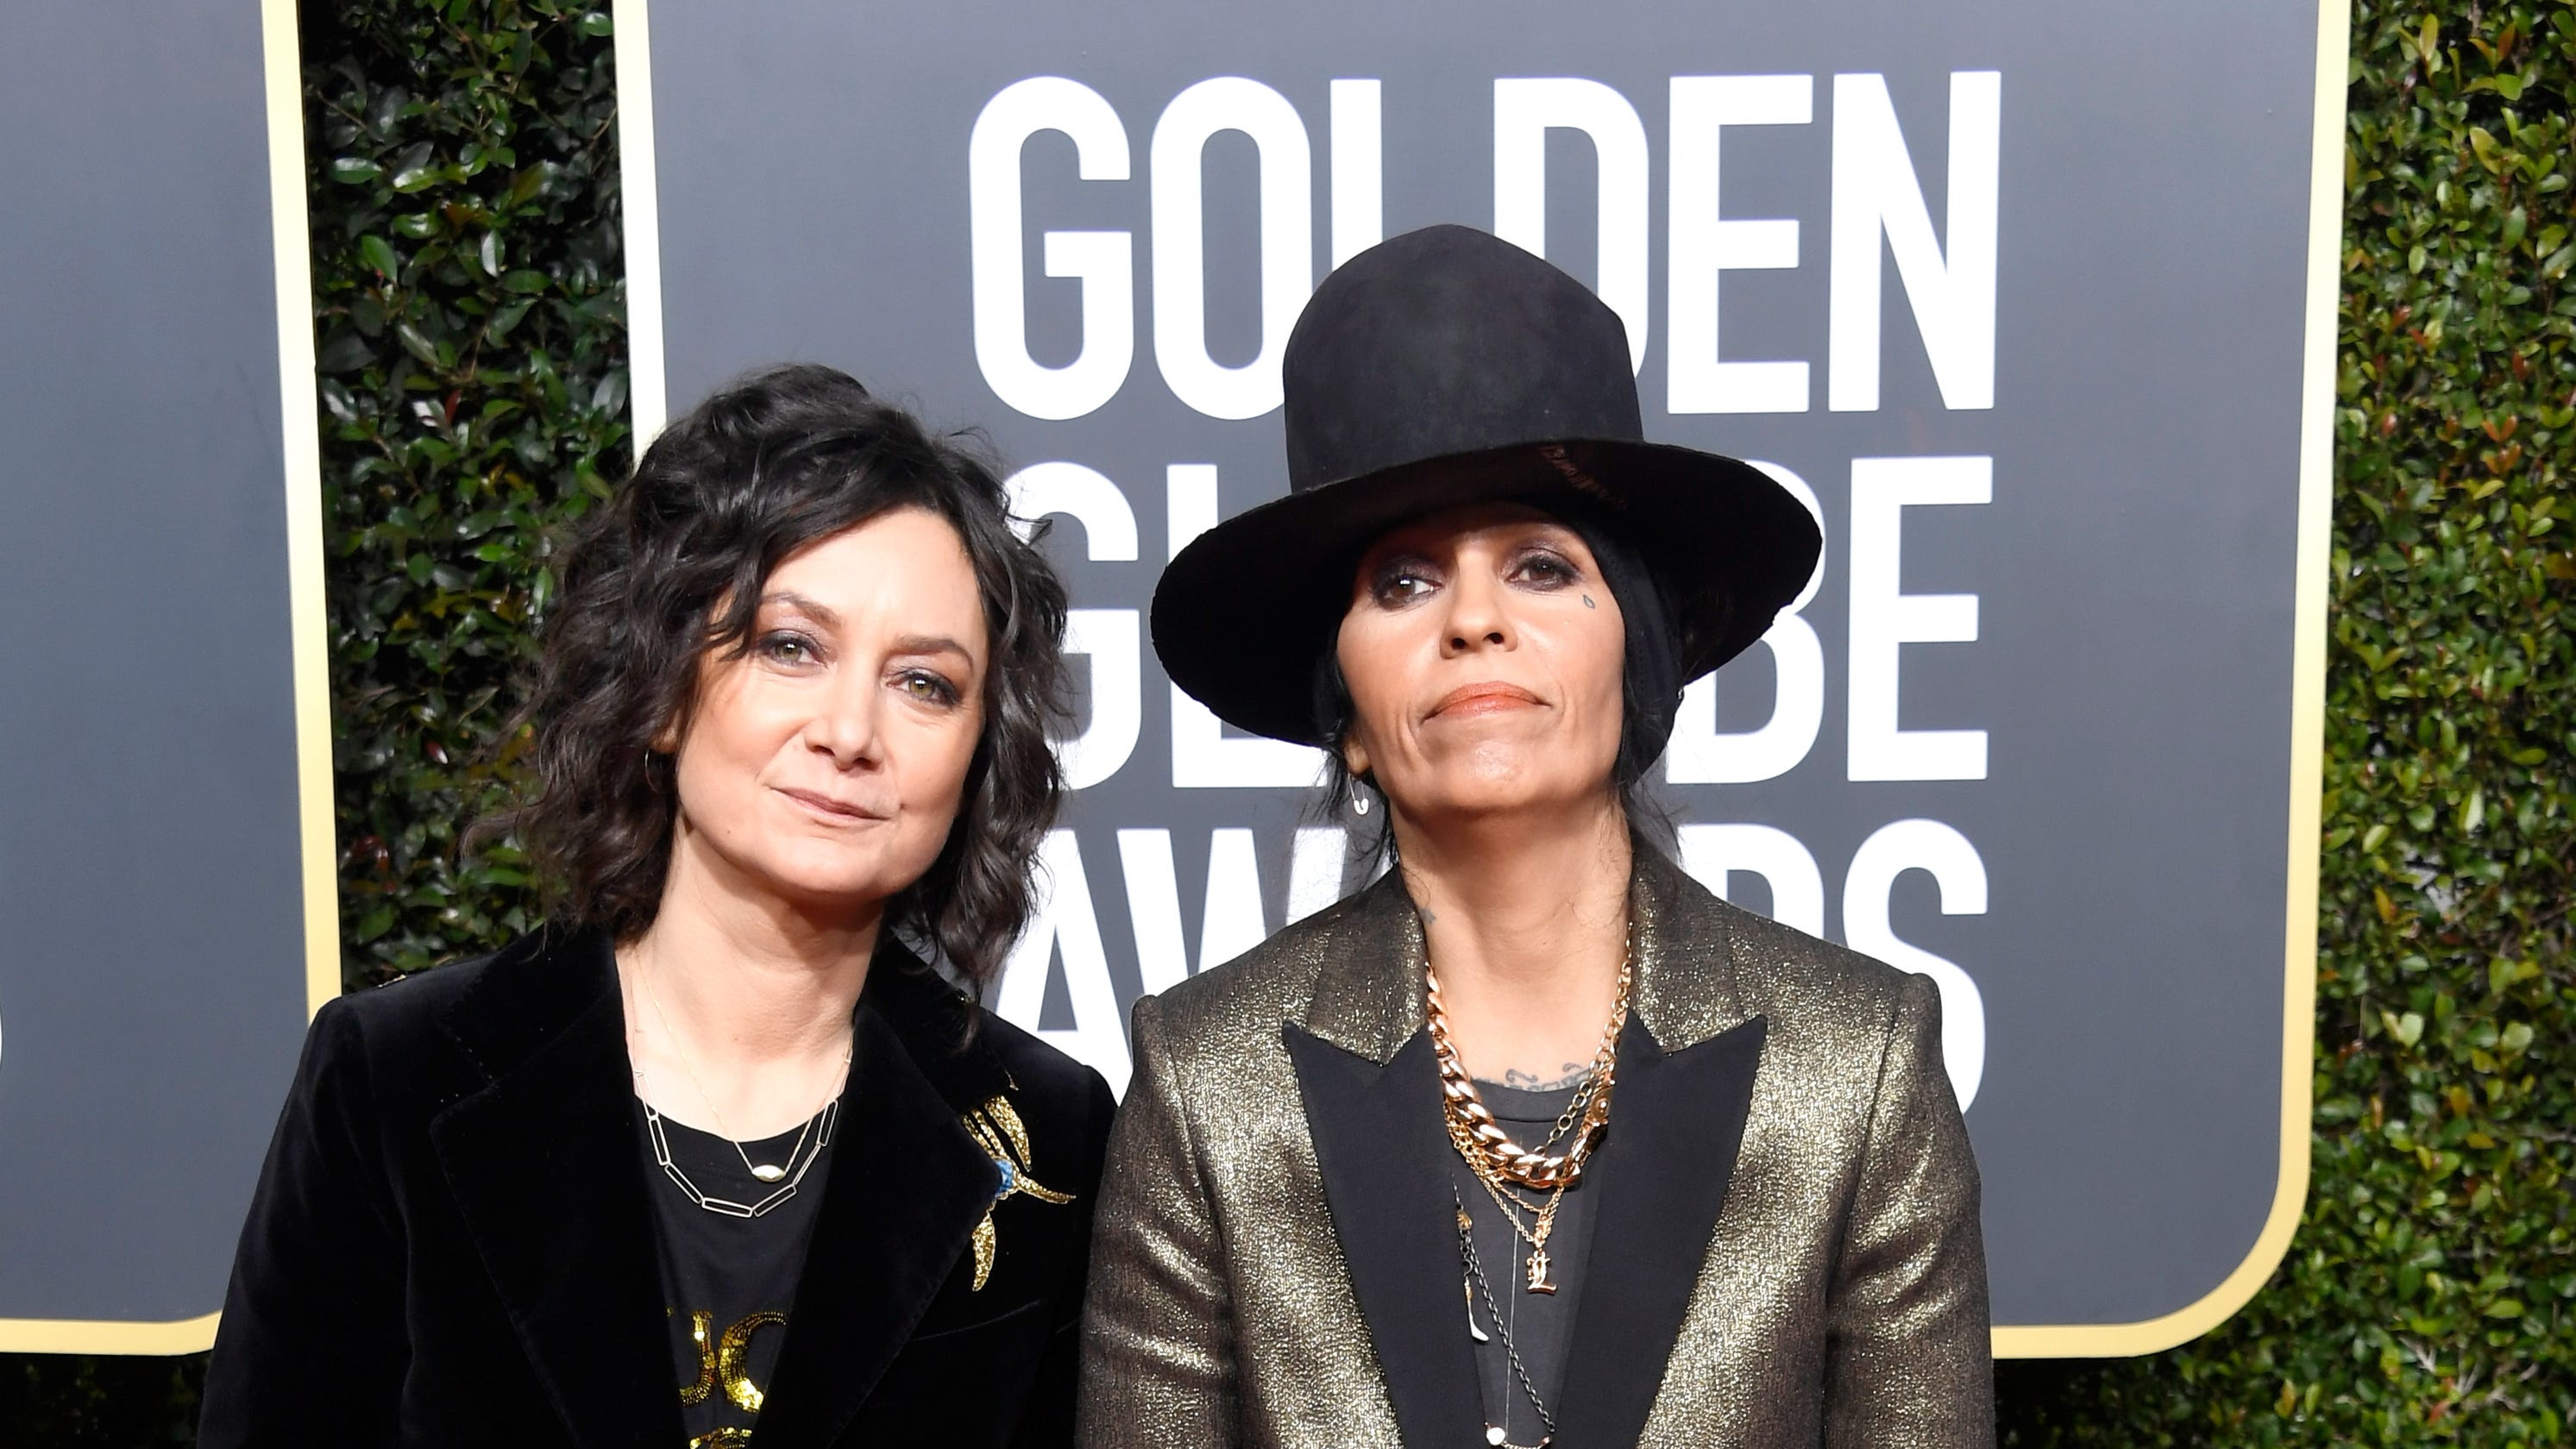 Sara Gilbert separating from musician wife Linda Perry after nearly six years: reports thumbnail